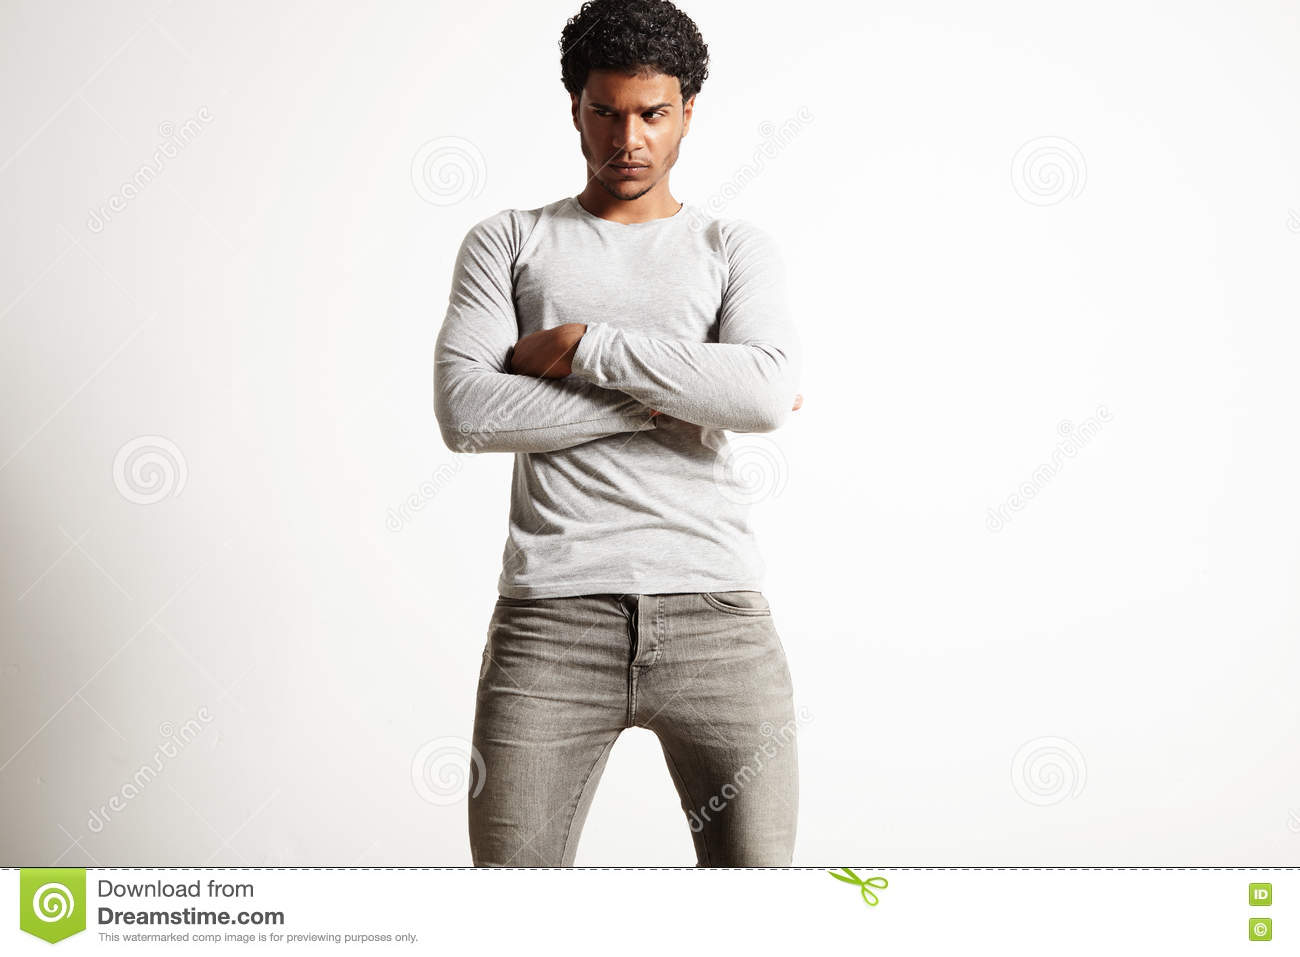 Young Black Model Wearing Light Gray Longsleeve T Shirt